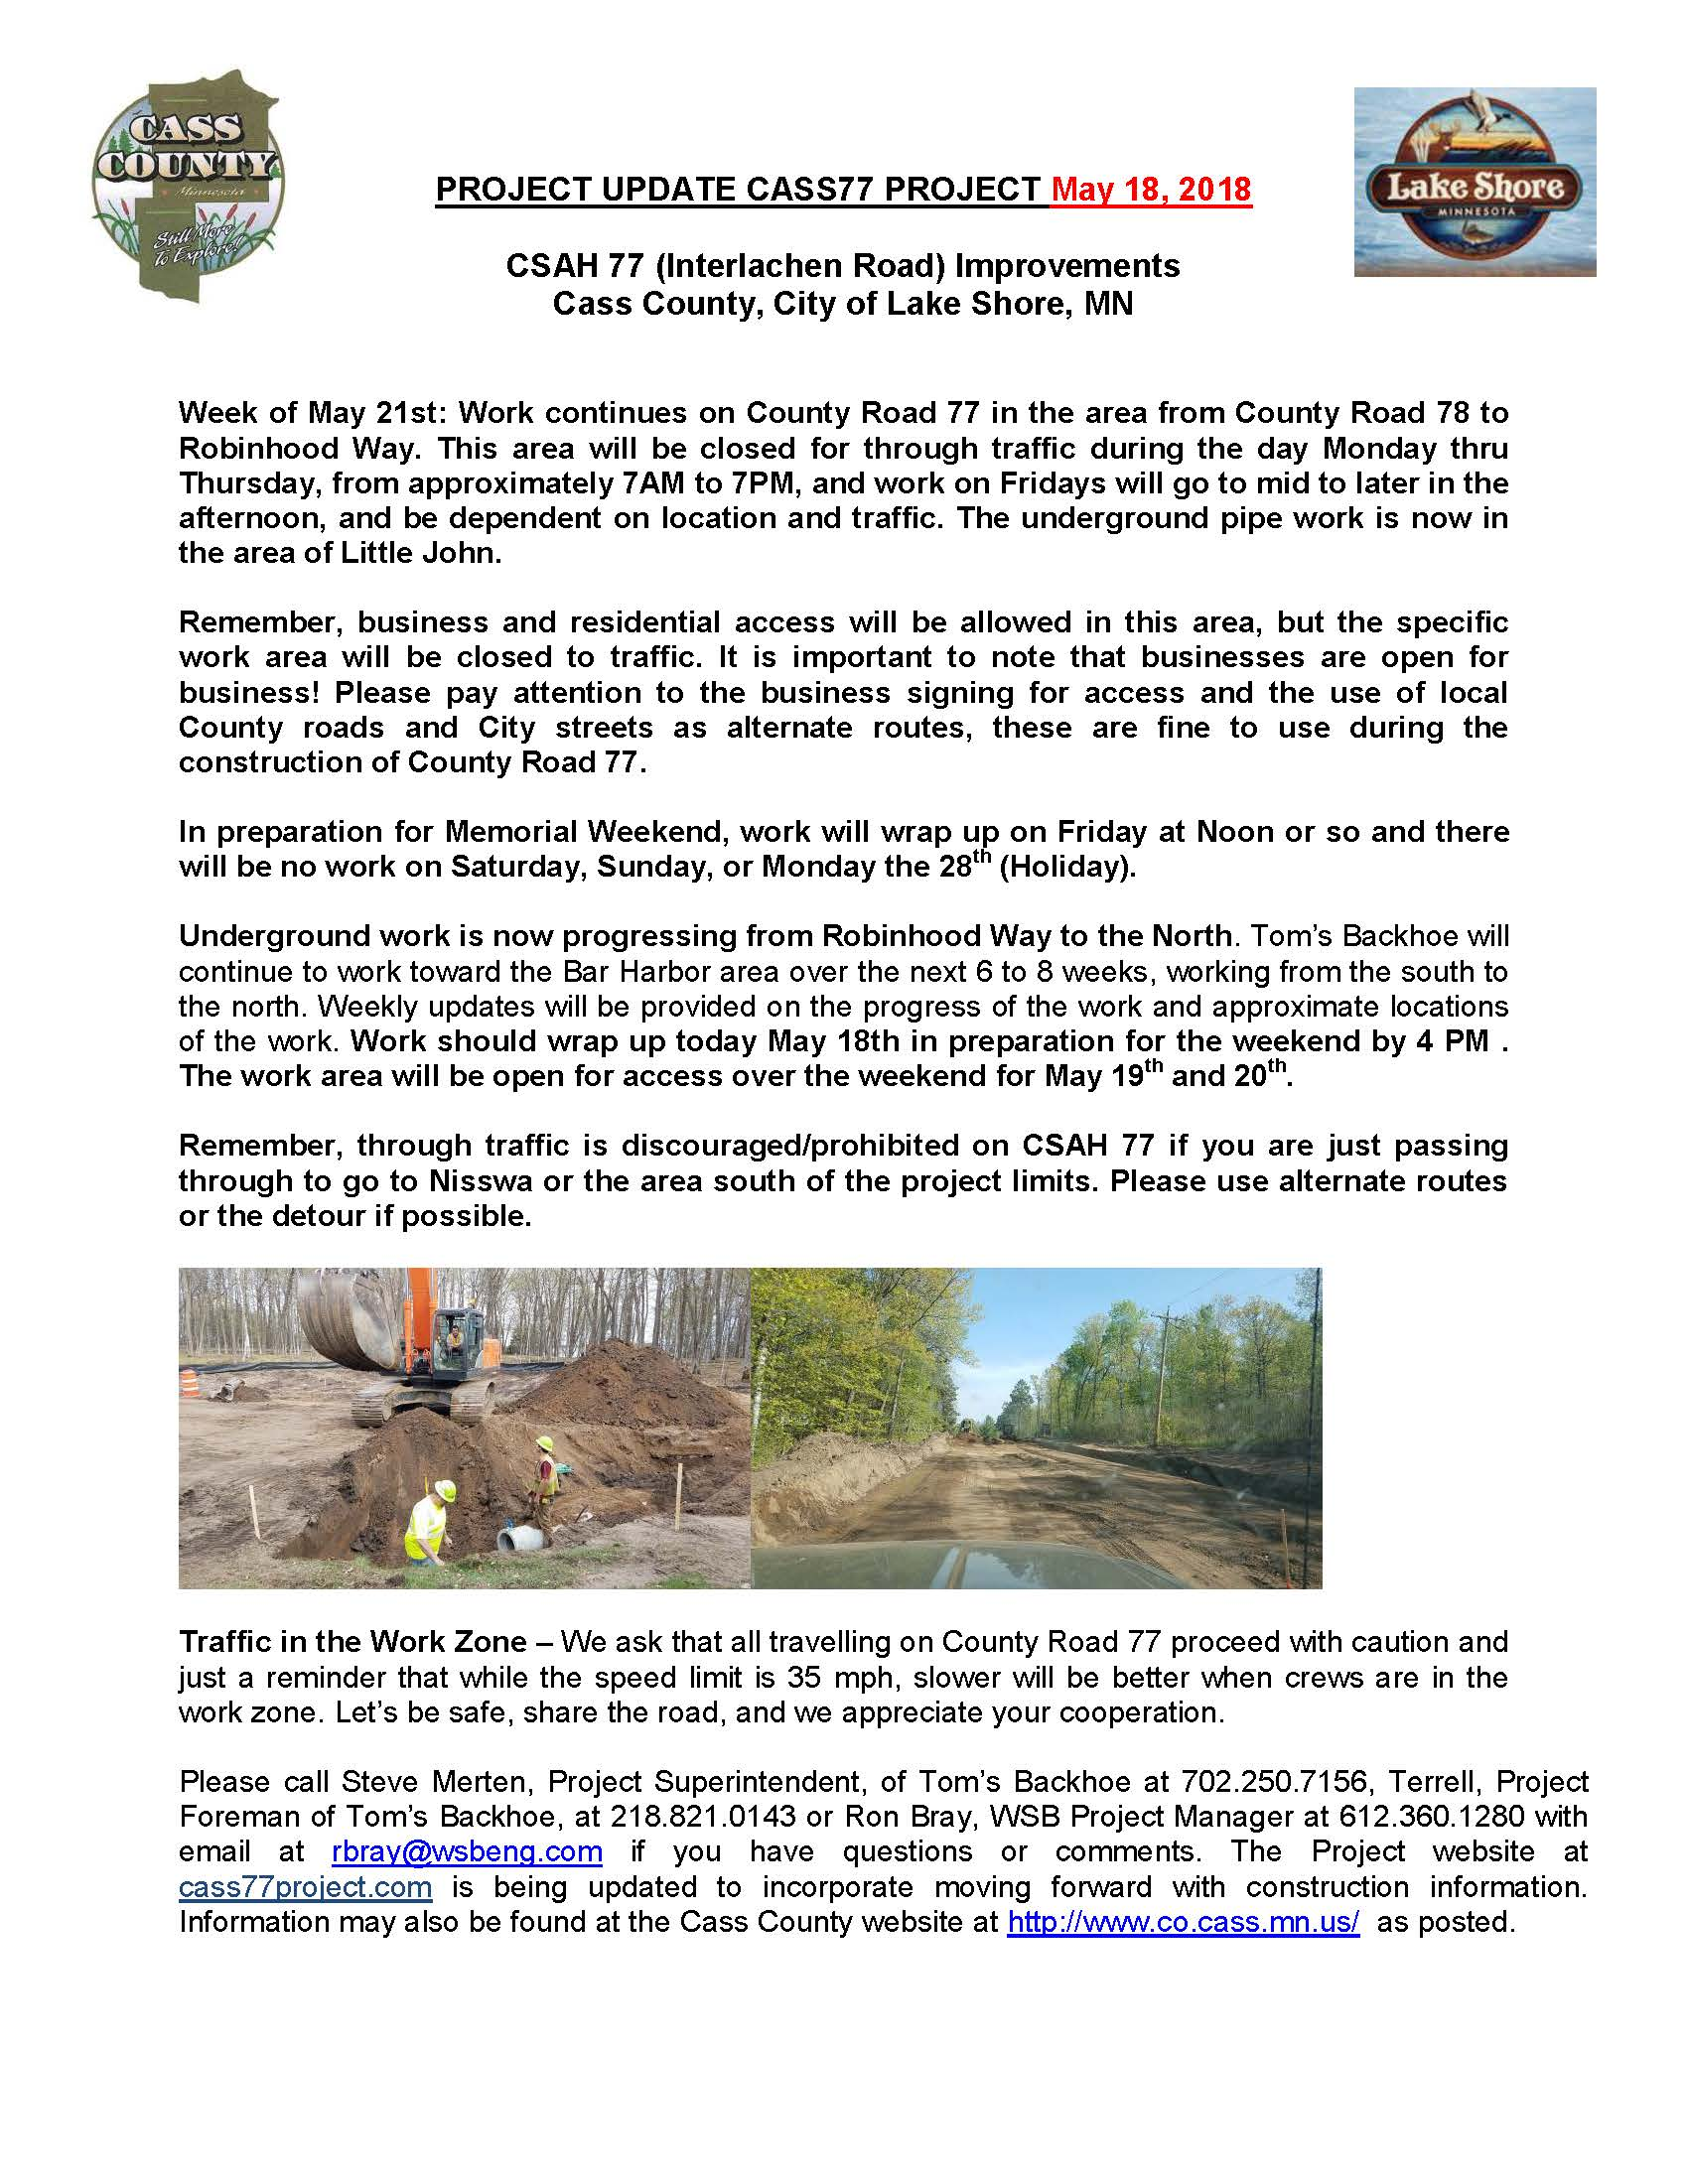 Cass County CSAH 77 Project update May 18th 2018 RBB.jpg